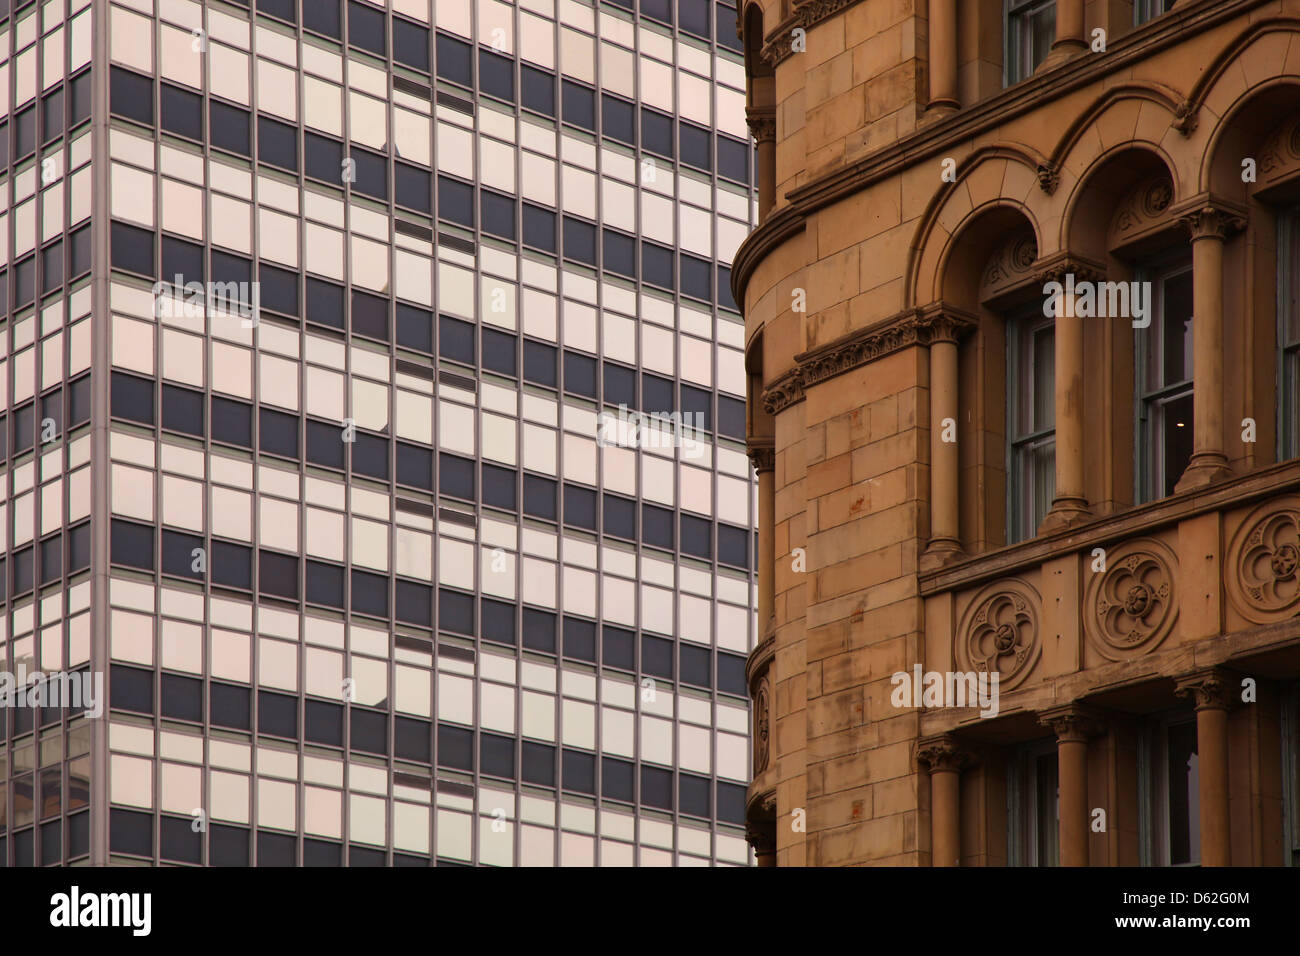 Culture clash architectural differences in style and Era - Stock Image